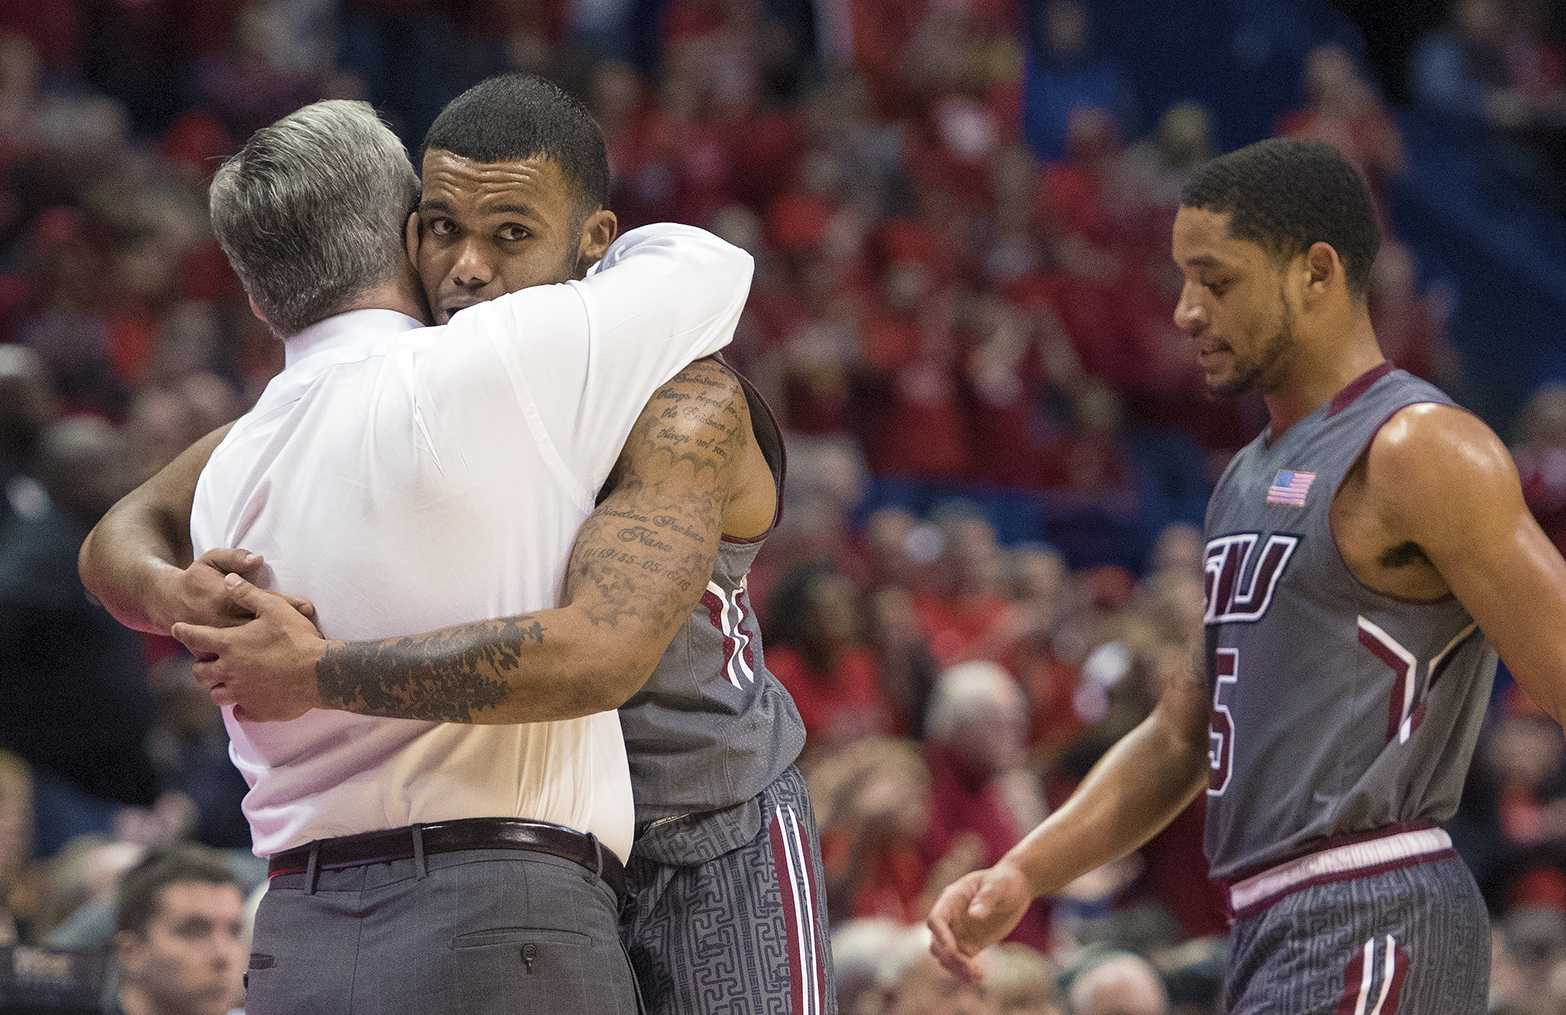 Coach Barry Hinson hugs senior guard Mike Rodriguez as he and fellow senior guard Leo Vincent walk off the floor for the last time in their Saluki careers Saturday, March 4, 2017, during SIU's 63-50 loss to Illinois State in the Missouri Valley Conference men's basketball tournament semifinals at Scottrade Center in St. Louis. (Sean Carley | @SeanMCarley)